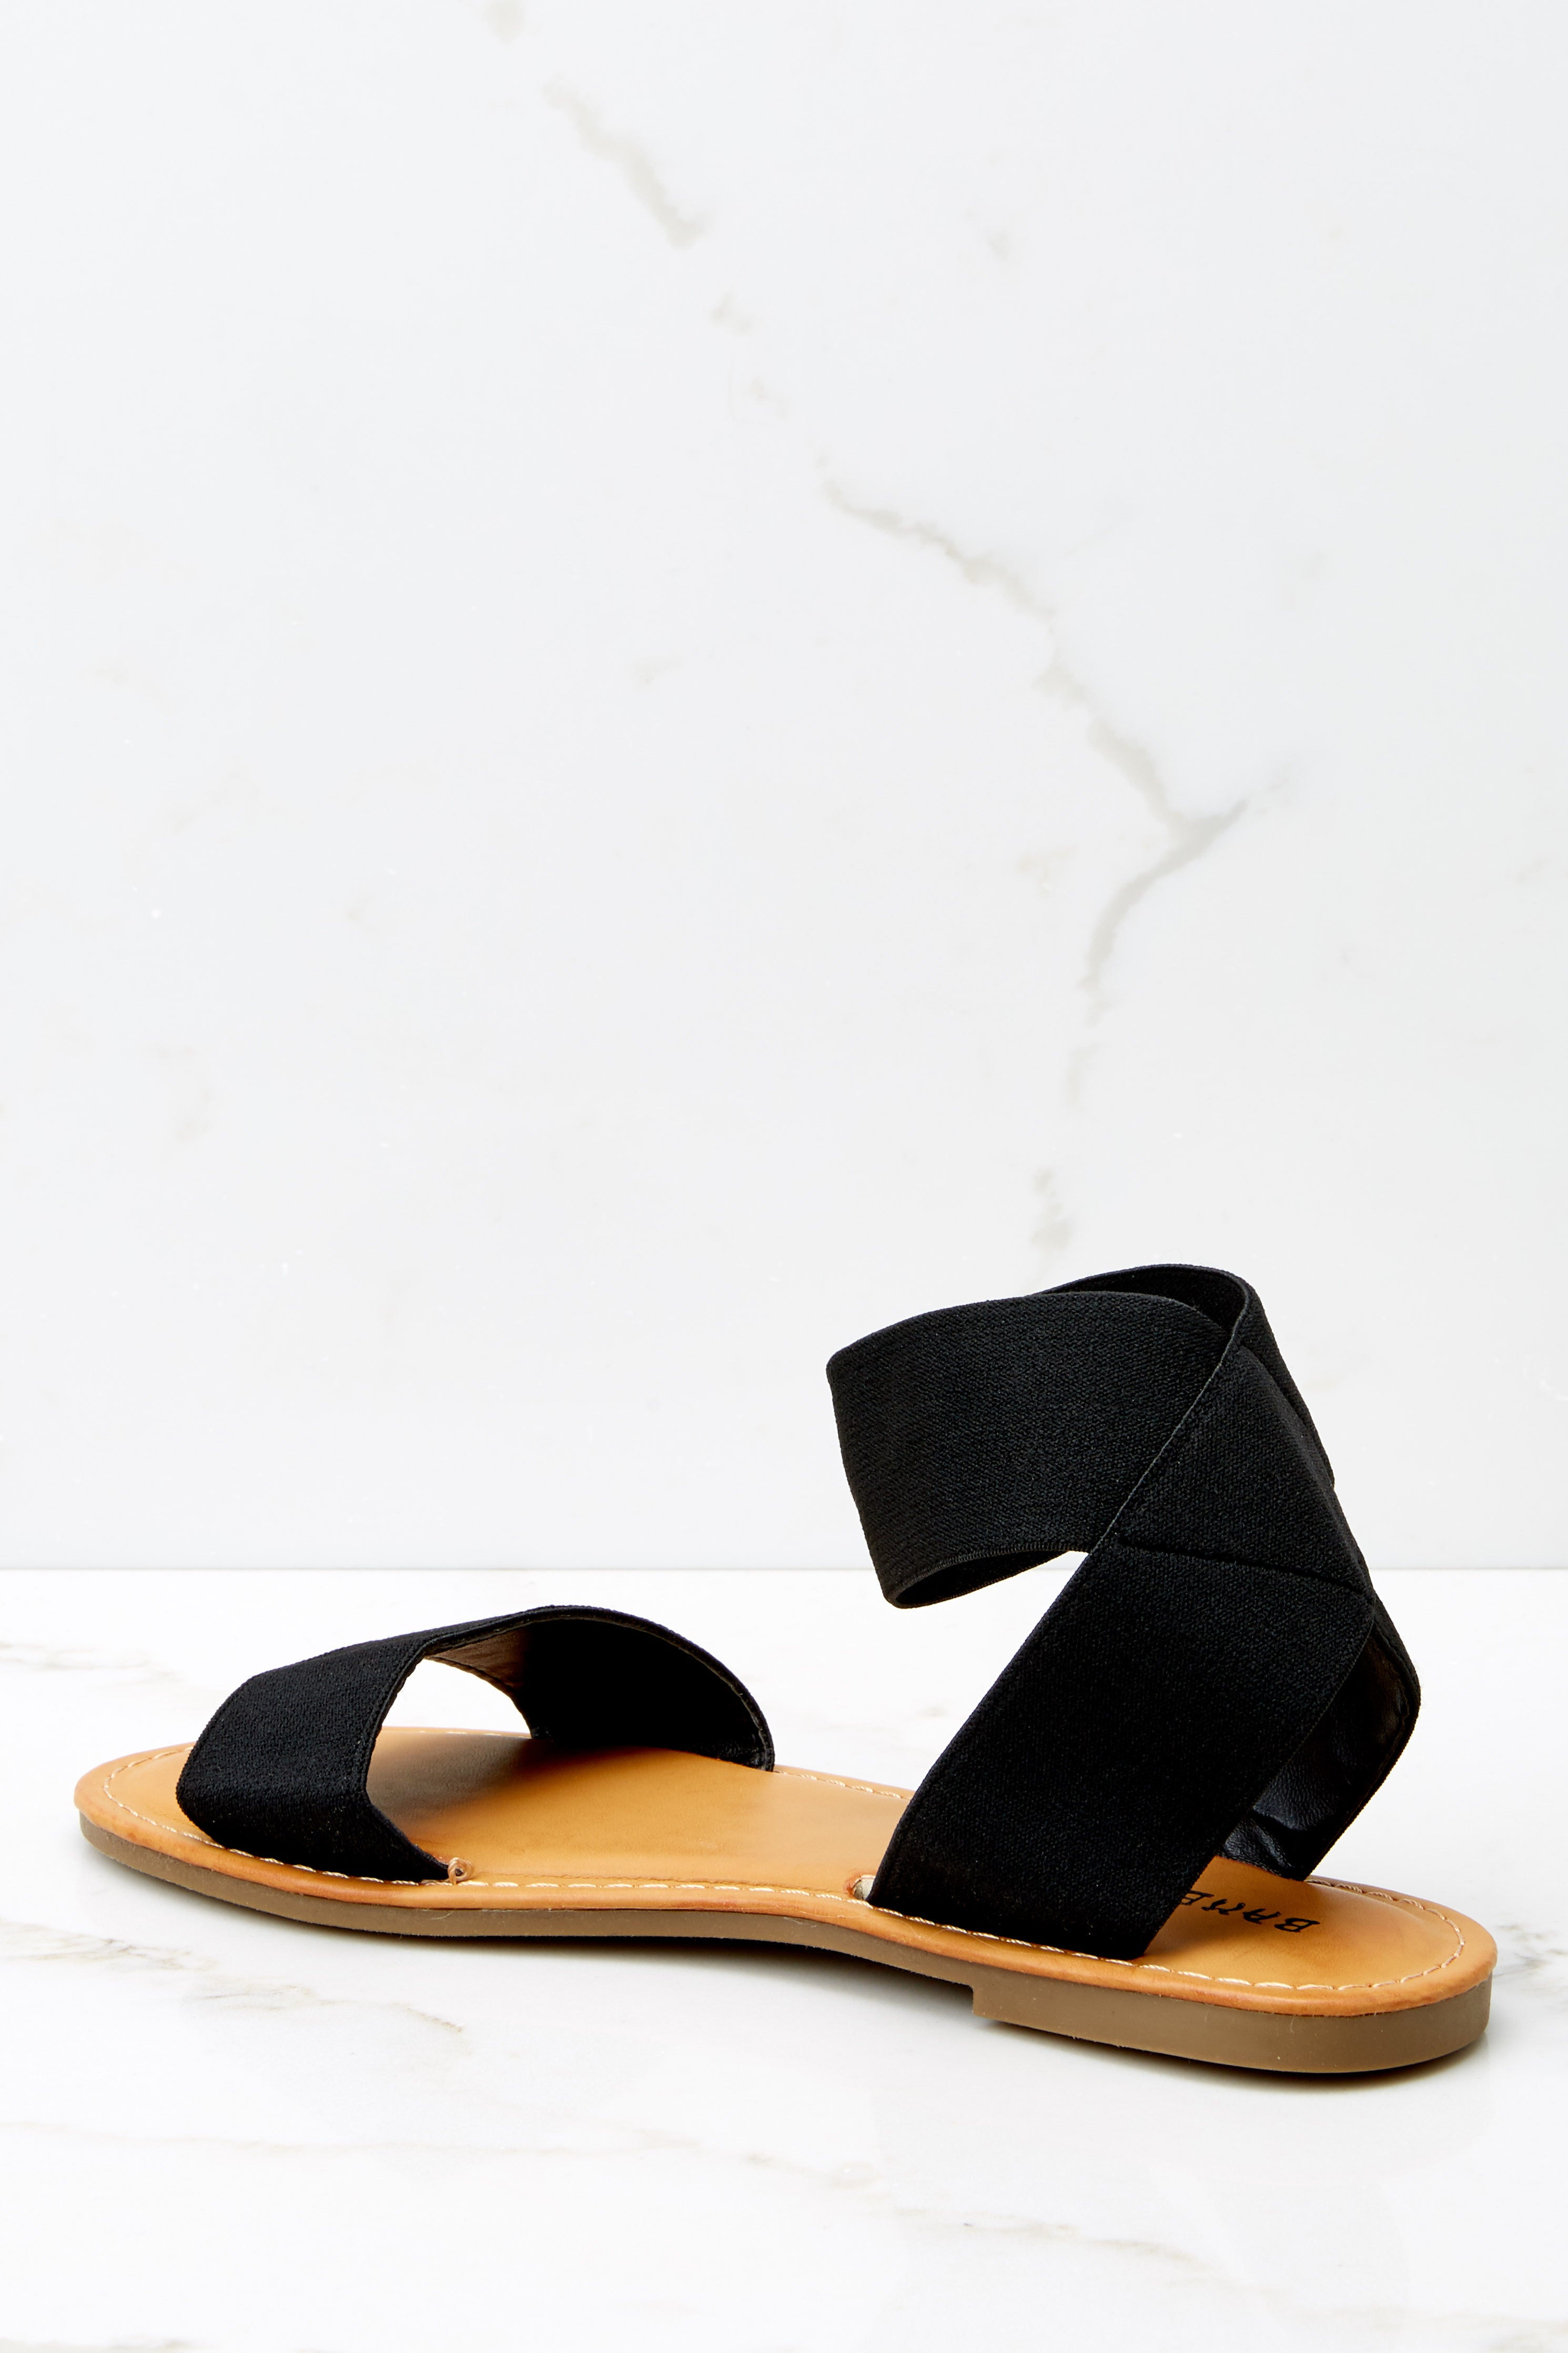 6 Can't Stay Away Black Ankle Strap Sandals at reddress.com